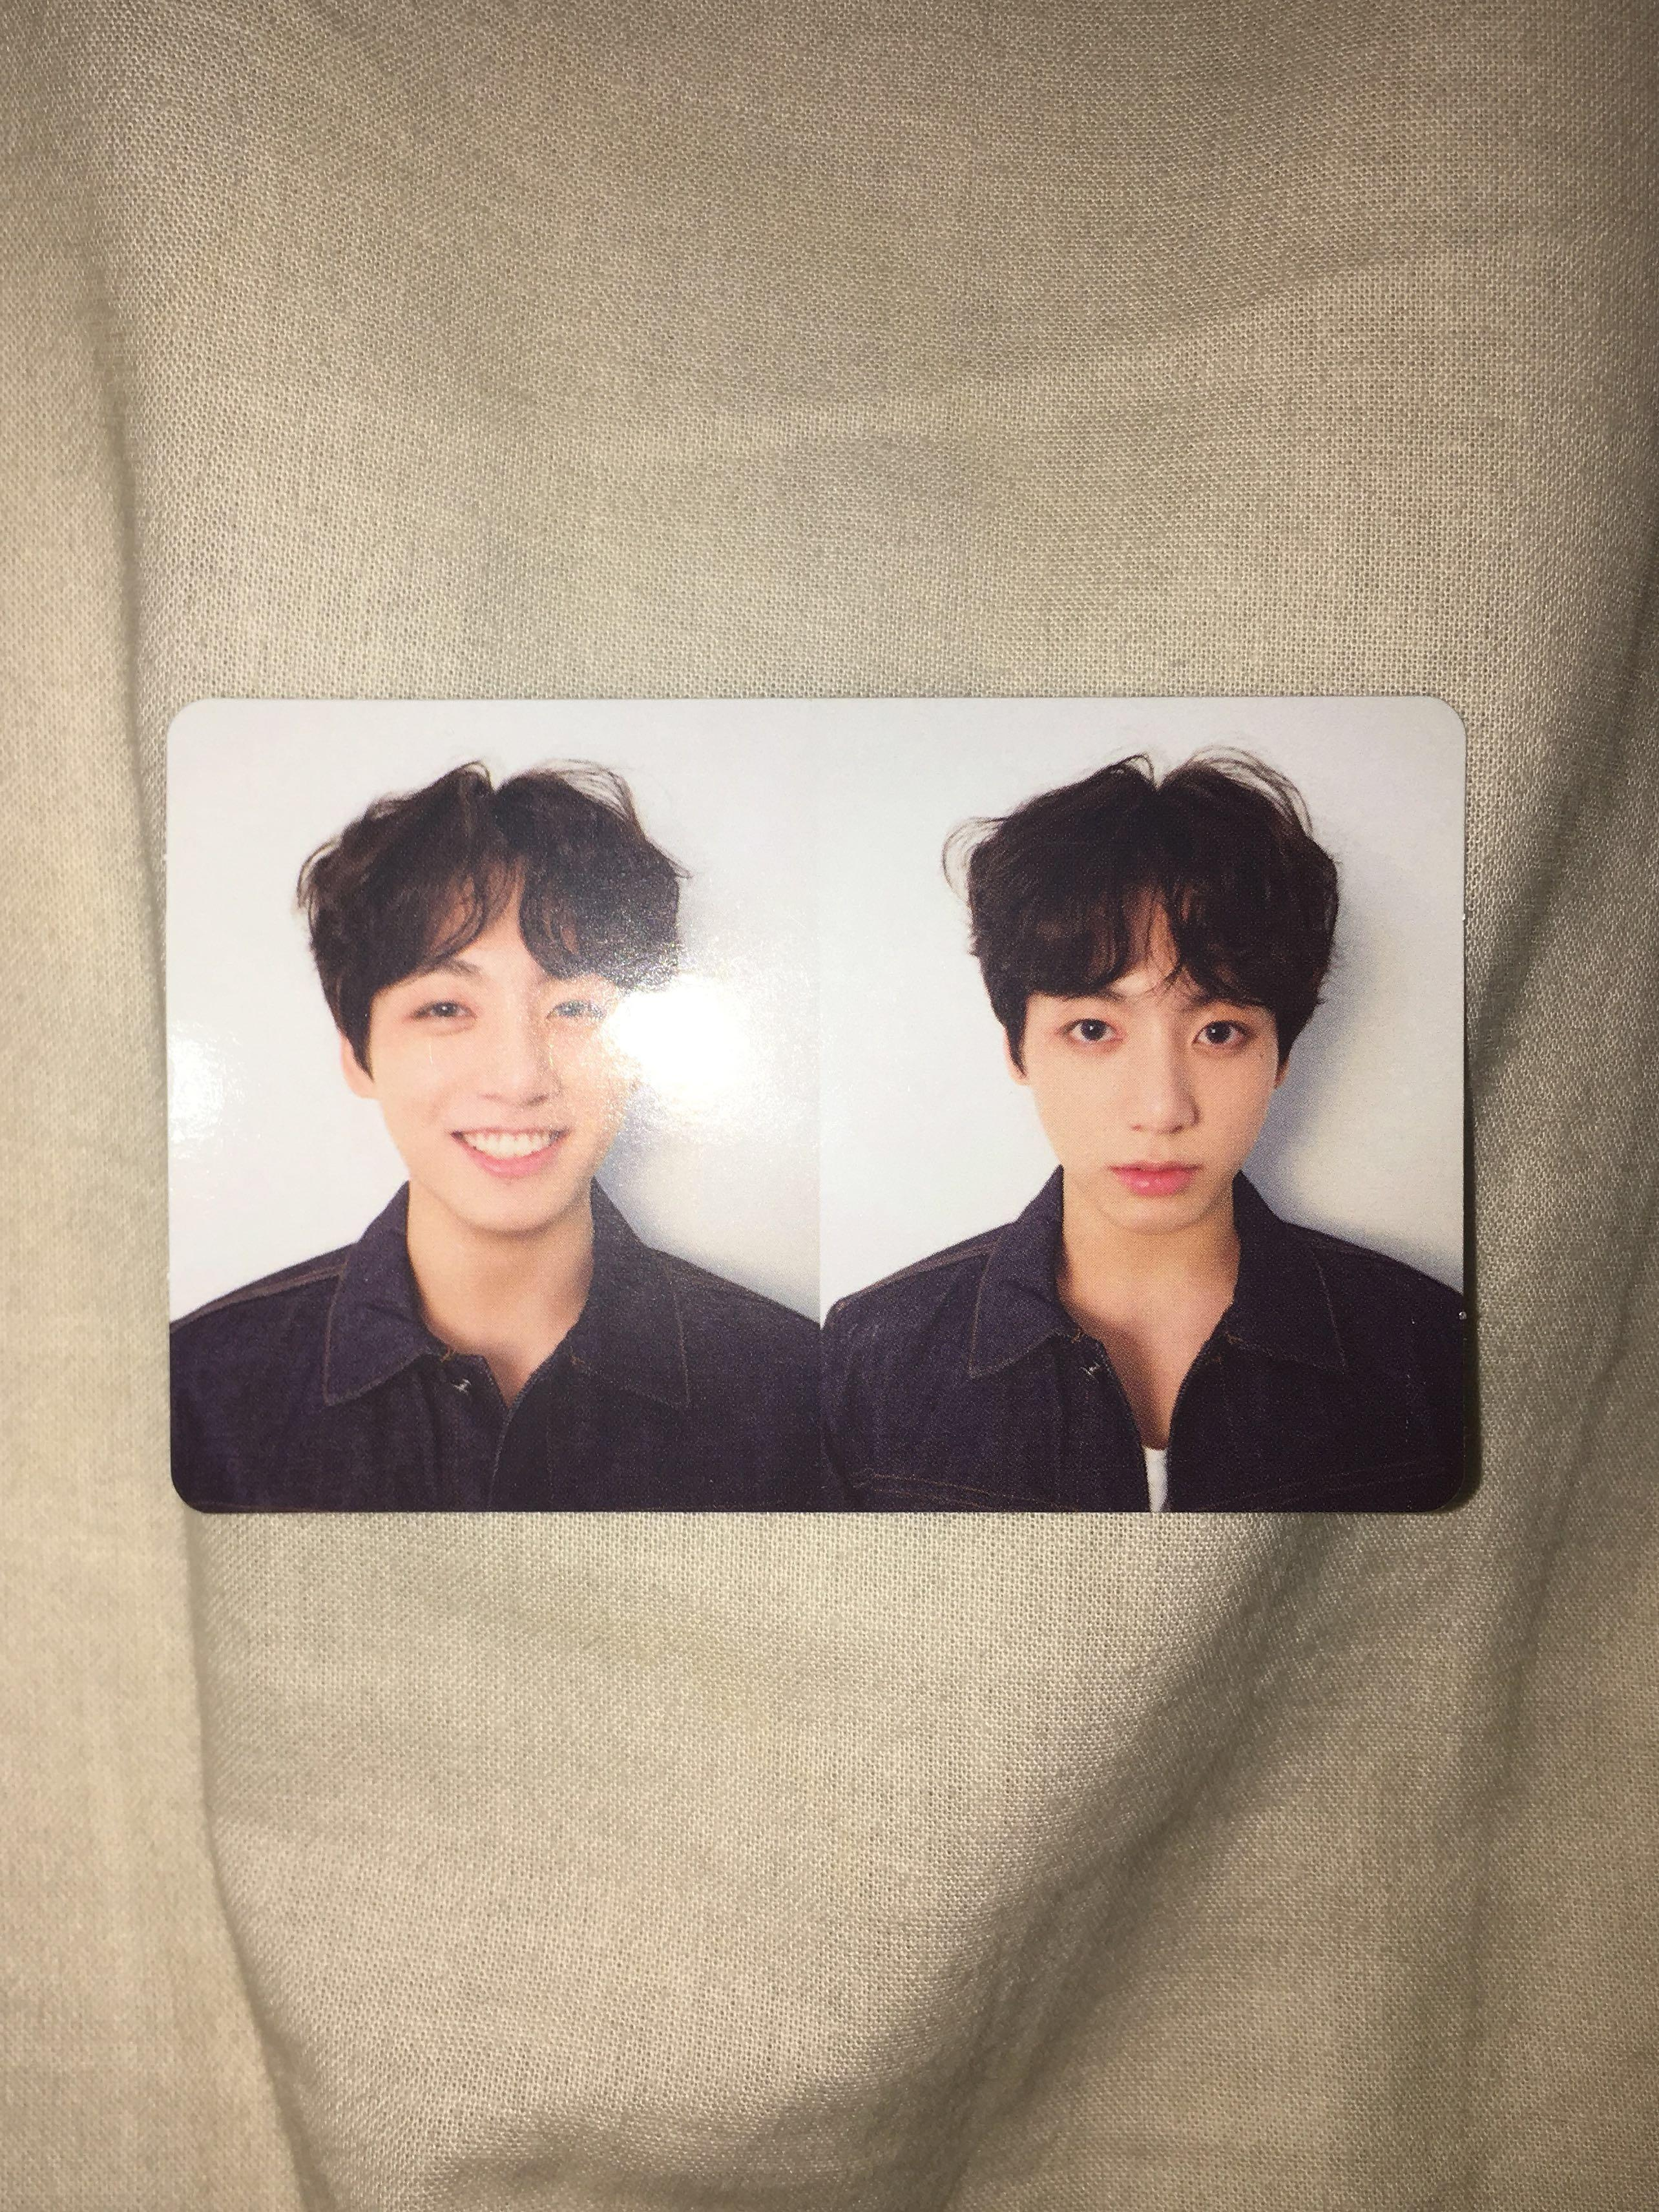 bts love yourself tear album version r (with jungkook pc)